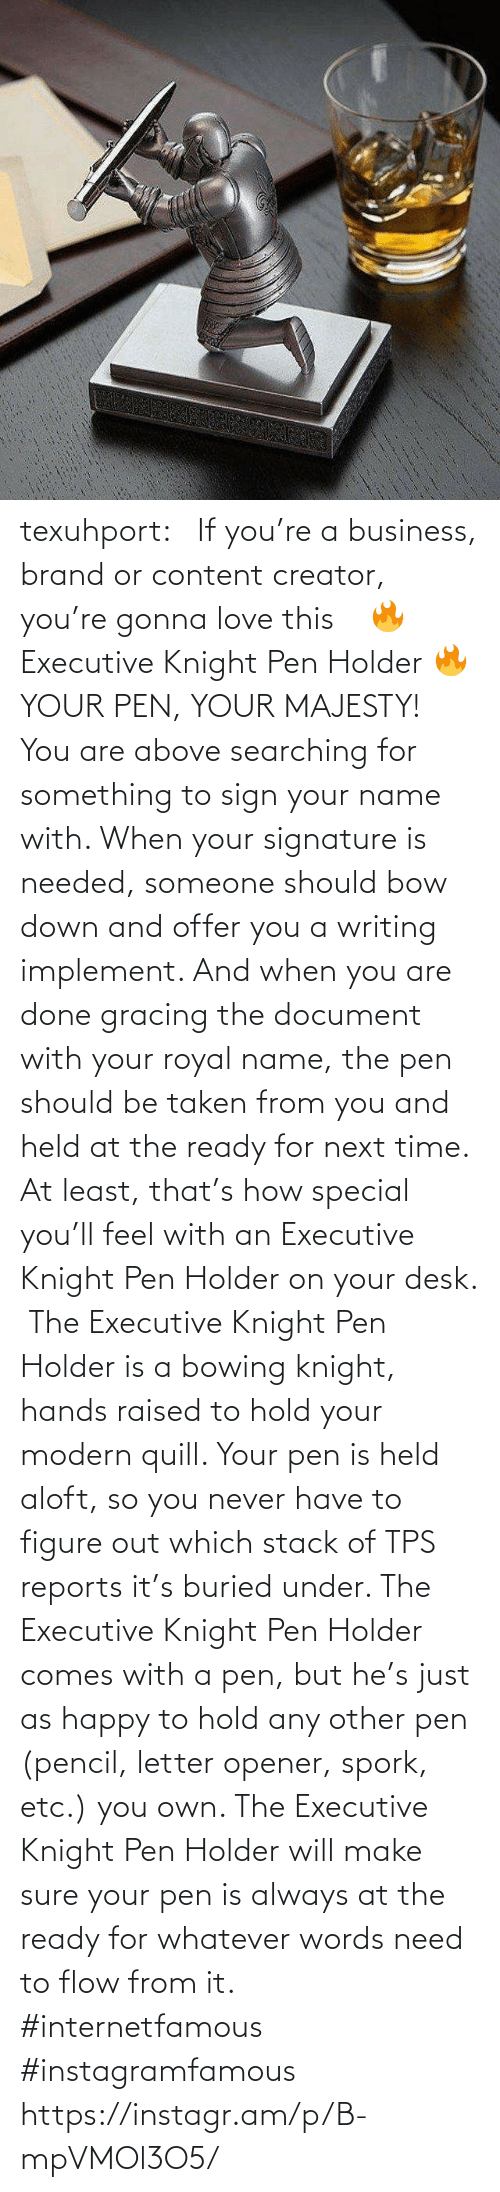 If Youre: texuhport:⎆ If you're a business, brand or content creator, you're gonna love this ⎆⁣ 🔥 Executive Knight Pen Holder 🔥⁣ YOUR PEN, YOUR MAJESTY!⁣ ⁣ You are above searching for something to sign your name with. When your signature is needed, someone should bow down and offer you a writing implement. And when you are done gracing the document with your royal name, the pen should be taken from you and held at the ready for next time. At least, that's how special you'll feel with an Executive Knight Pen Holder on your desk.⁣ ⁣ The Executive Knight Pen Holder is a bowing knight, hands raised to hold your modern quill. Your pen is held aloft, so you never have to figure out which stack of TPS reports it's buried under. The Executive Knight Pen Holder comes with a pen, but he's just as happy to hold any other pen (pencil, letter opener, spork, etc.) you own. The Executive Knight Pen Holder will make sure your pen is always at the ready for whatever words need to flow from it.⁣ #internetfamous  #instagramfamous https://instagr.am/p/B-mpVMOl3O5/